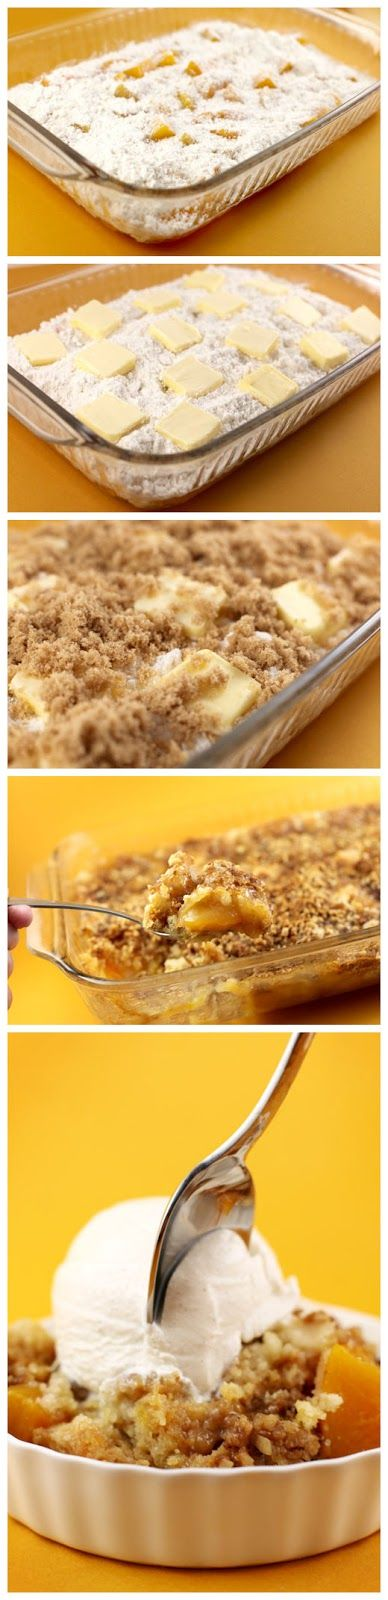 Ridiculously Easy Peach Crunch Cake recipe...'also called dump cake! Can do this with different varieties to suit your taste